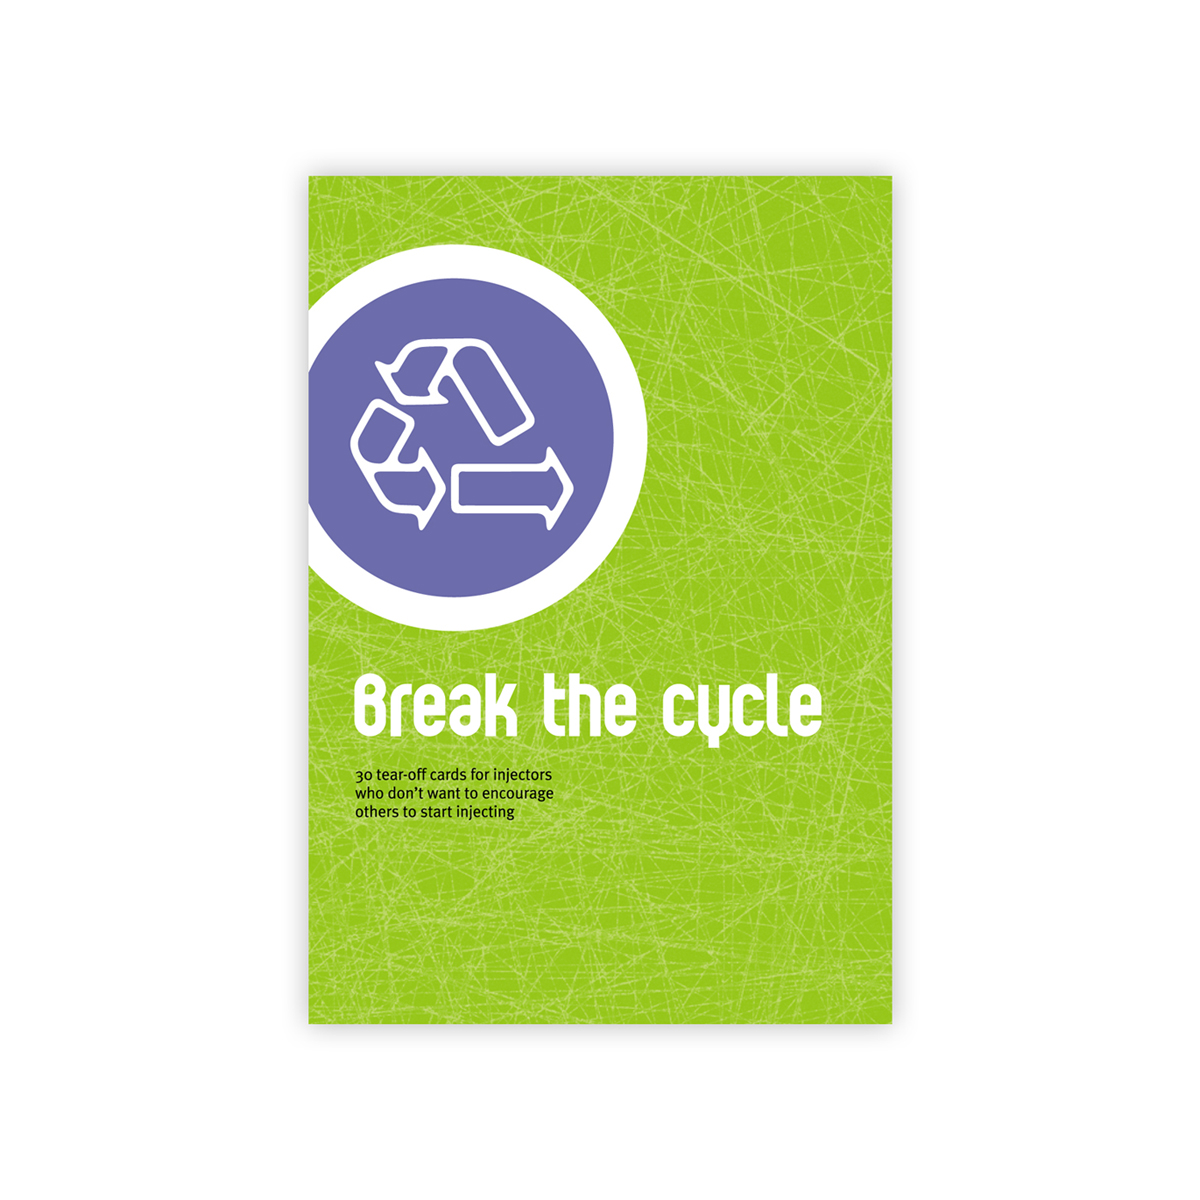 Break the cycle campaign cards